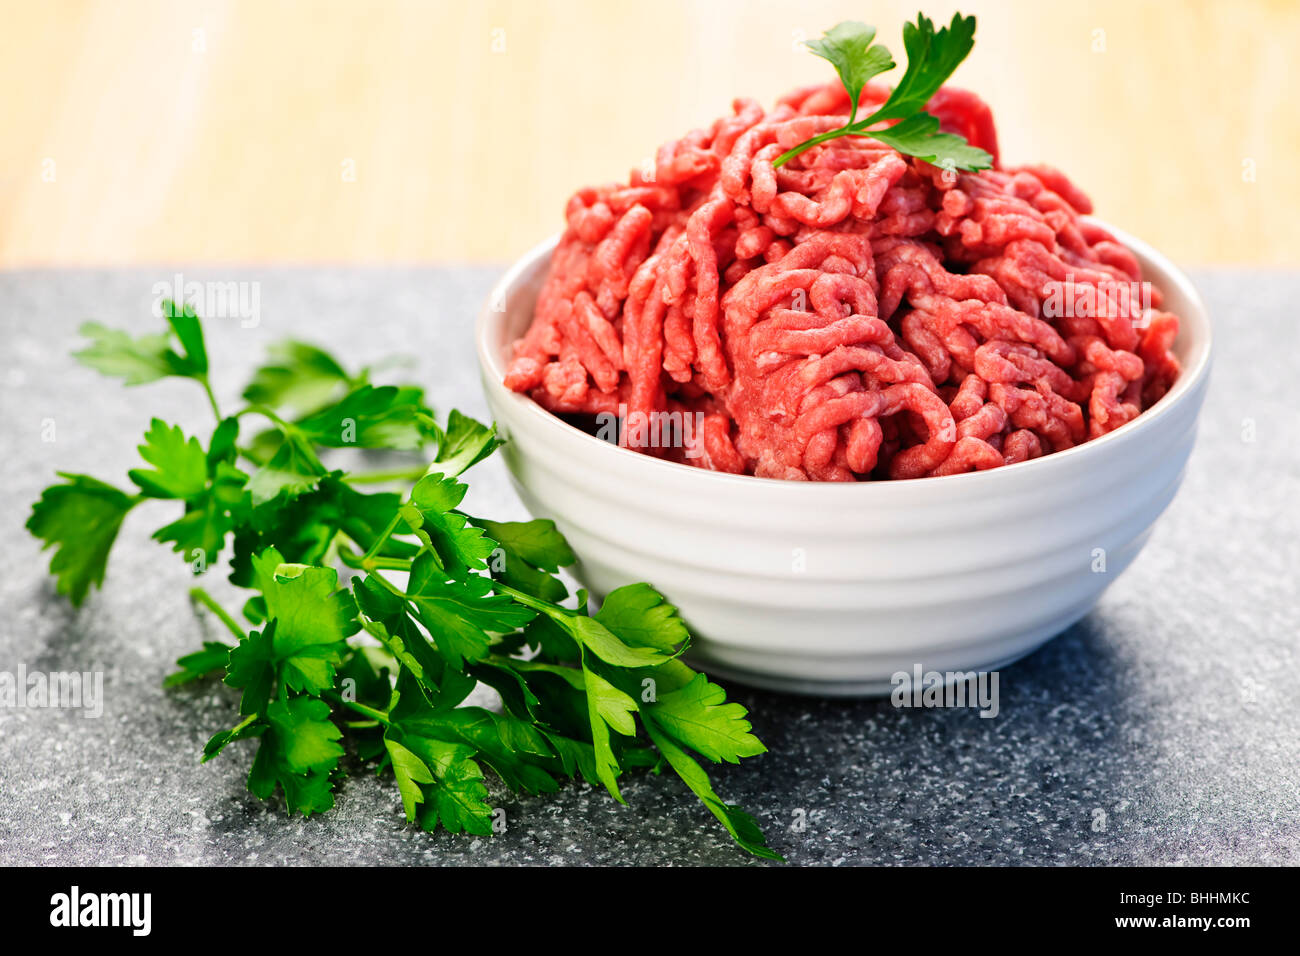 Close up on bowl of lean red raw ground meat - Stock Image